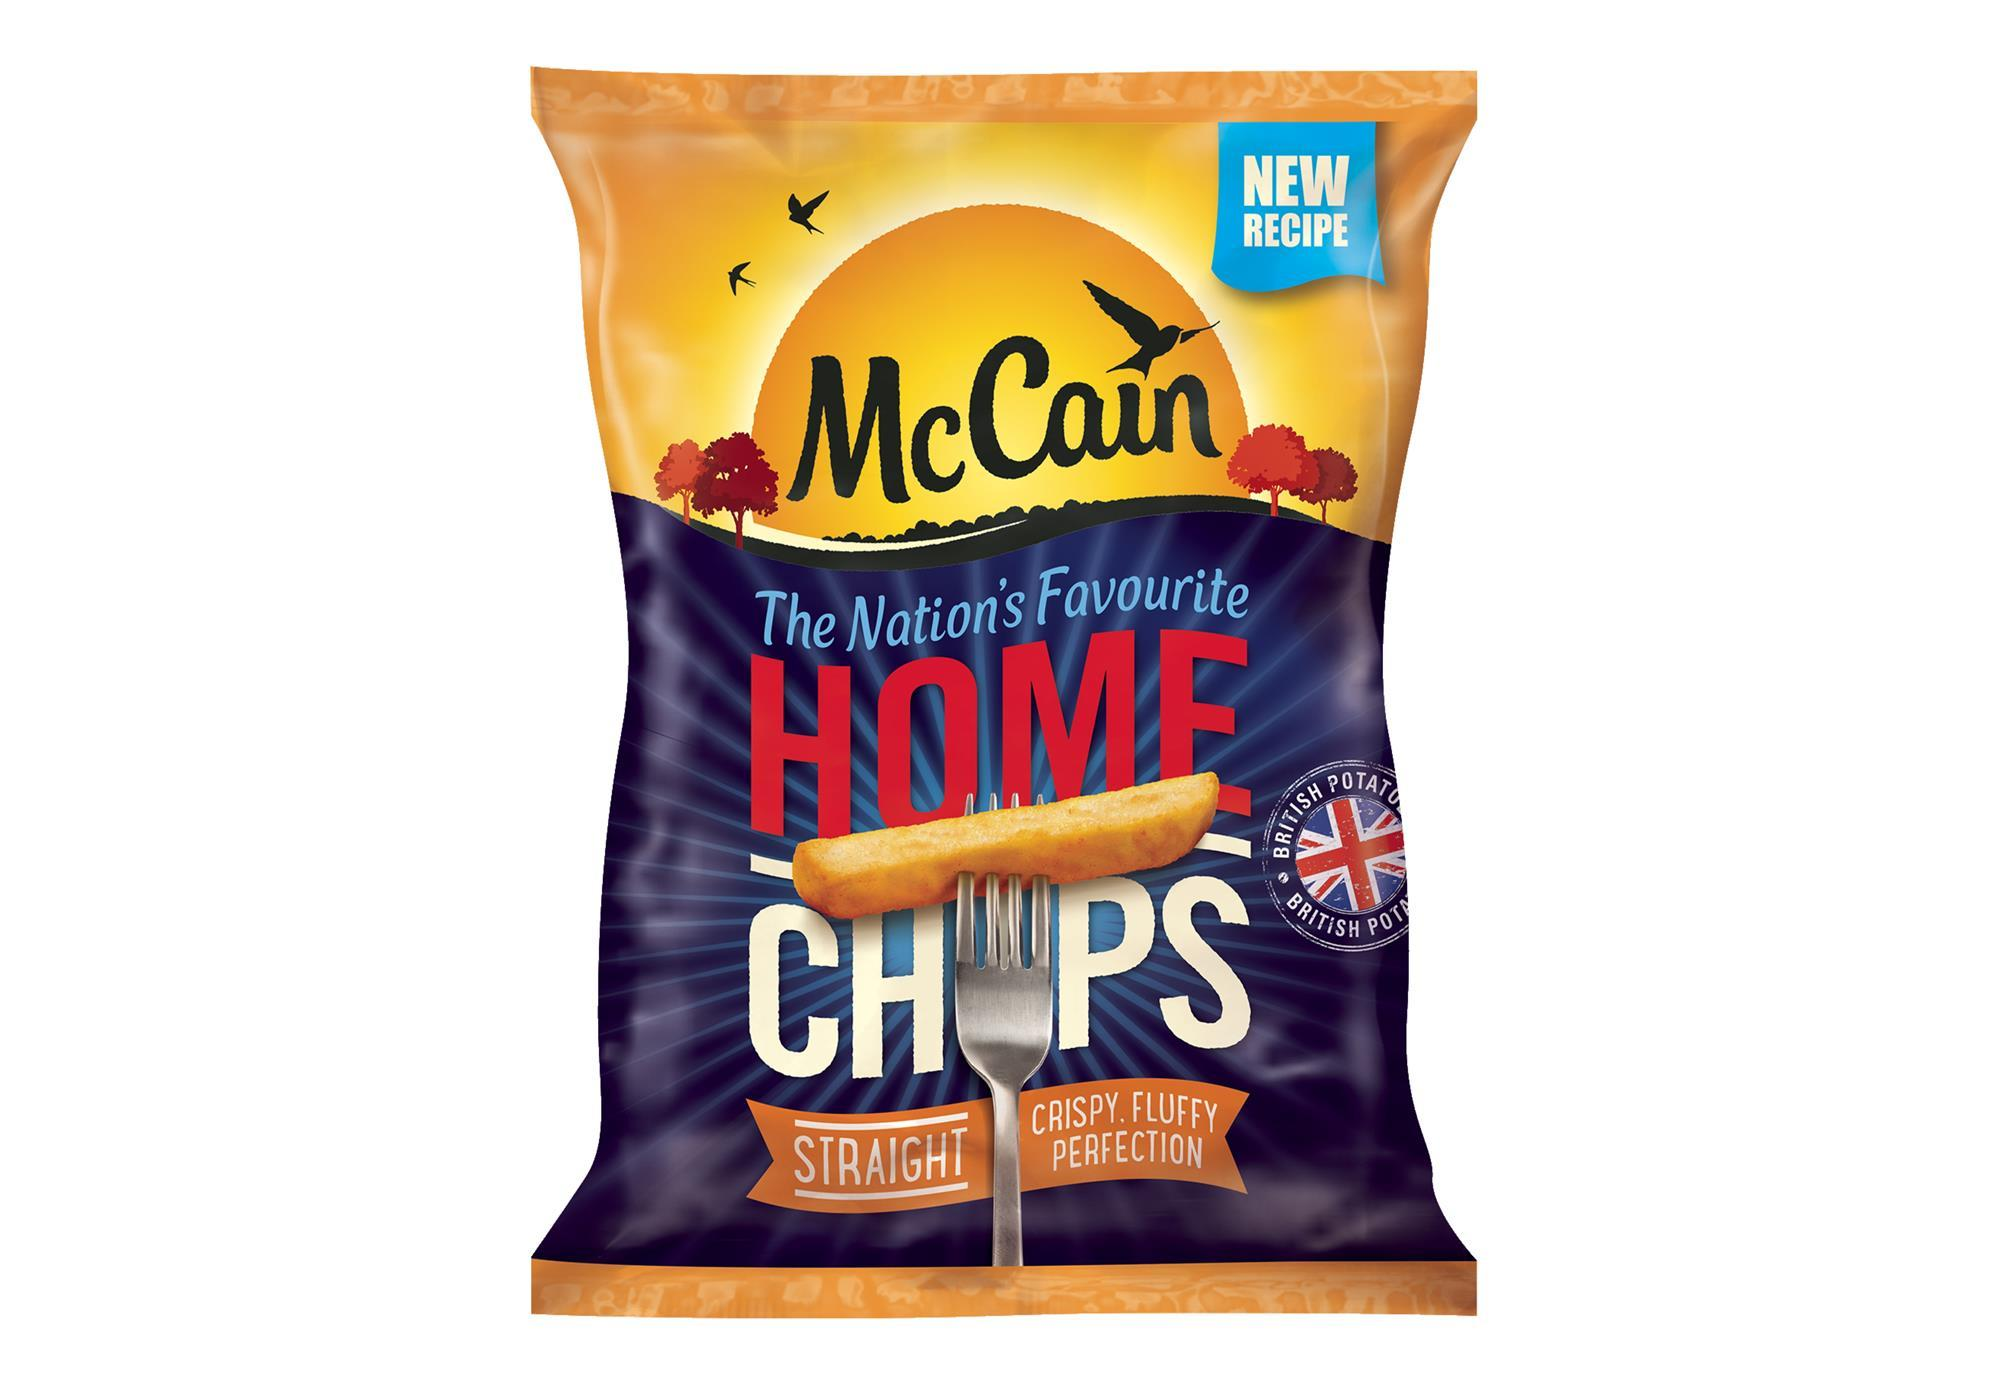 McCain reveals new recipe for Home Chips | Product News